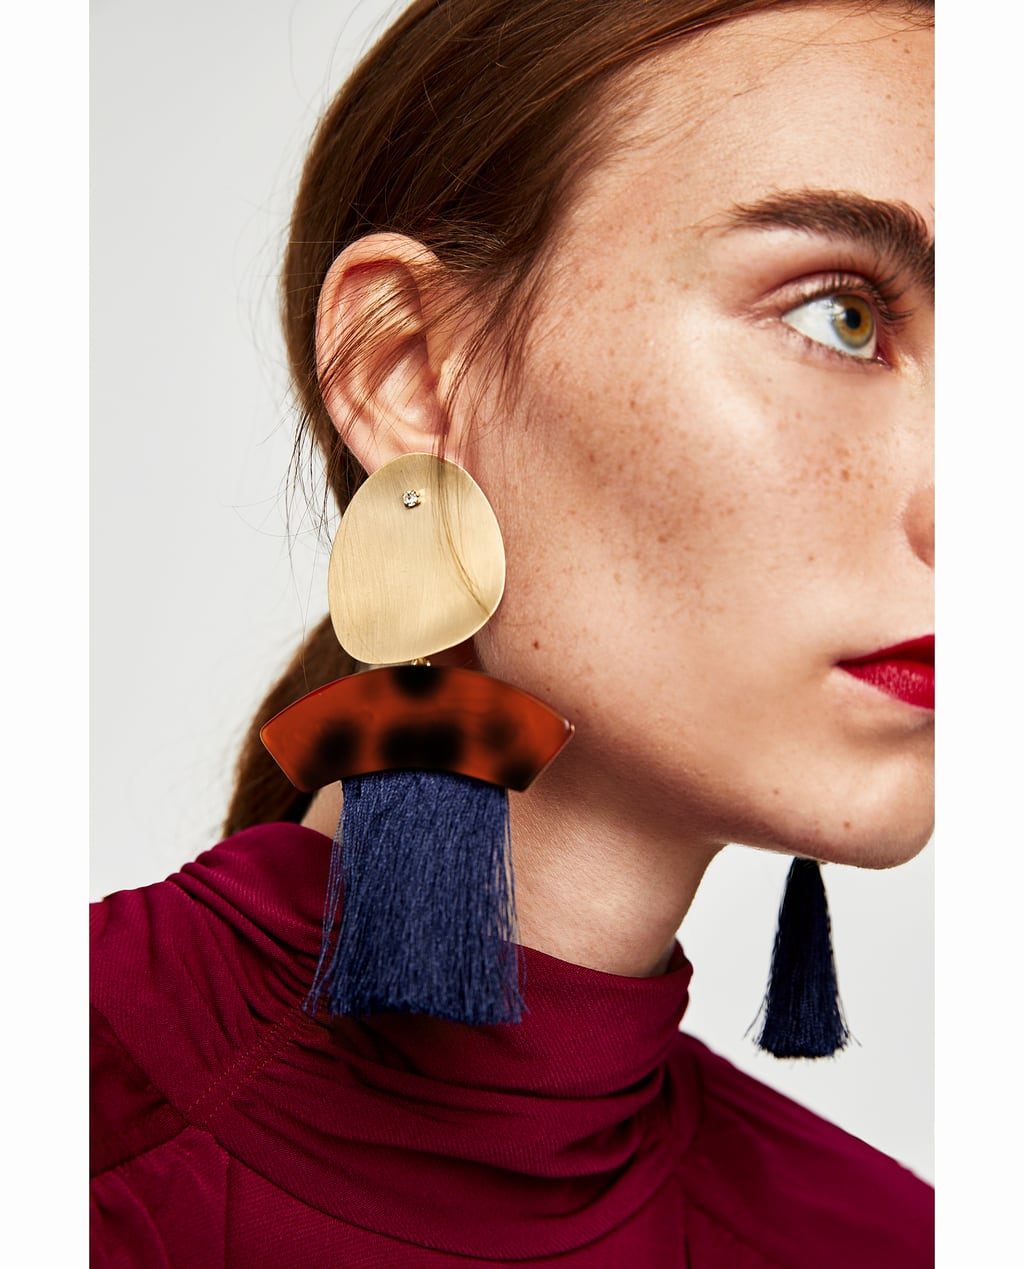 ZARA EARRINGS WITH FRINGE AND METAL